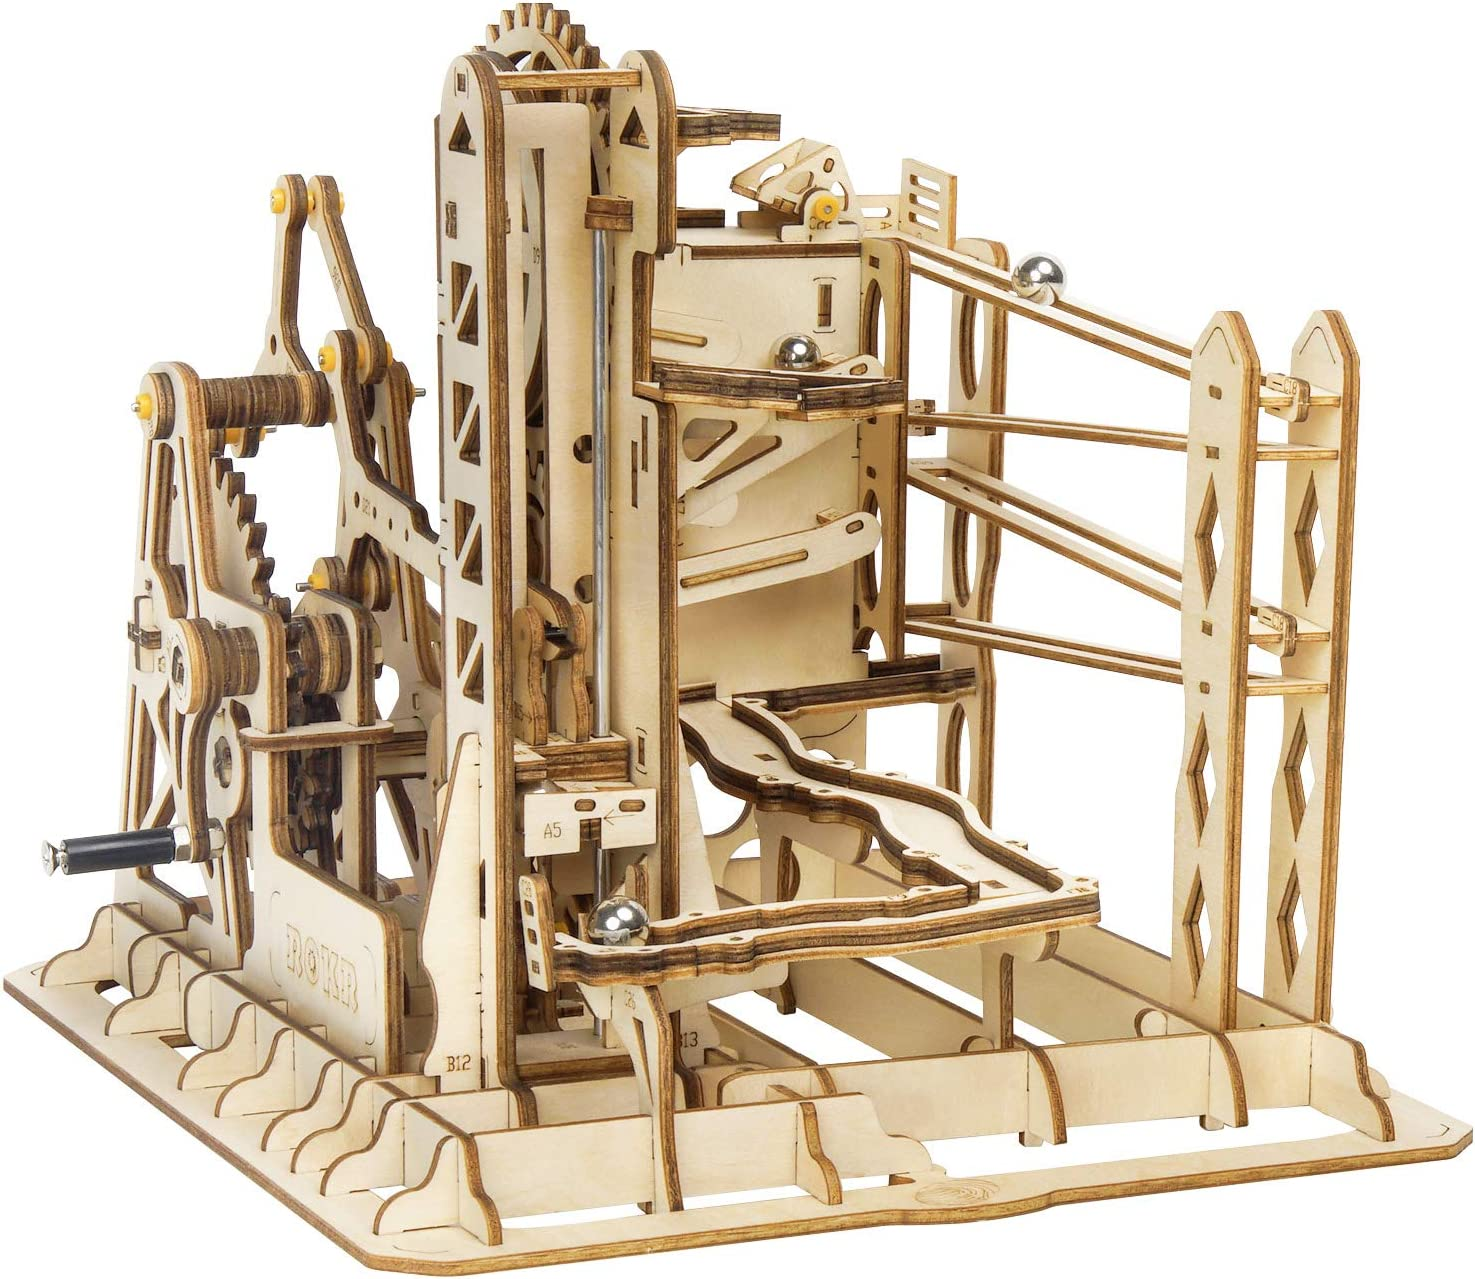 ROKR Wooden Marble Run Sets-Assembly Magic Tracks Toys-Fantastic Educational Toy-Wooden Puzzle Model Kit-Home Decor-Unique Christmas,Birthday Gifts for Boys,Girls,Teens,Adults Marble Squad